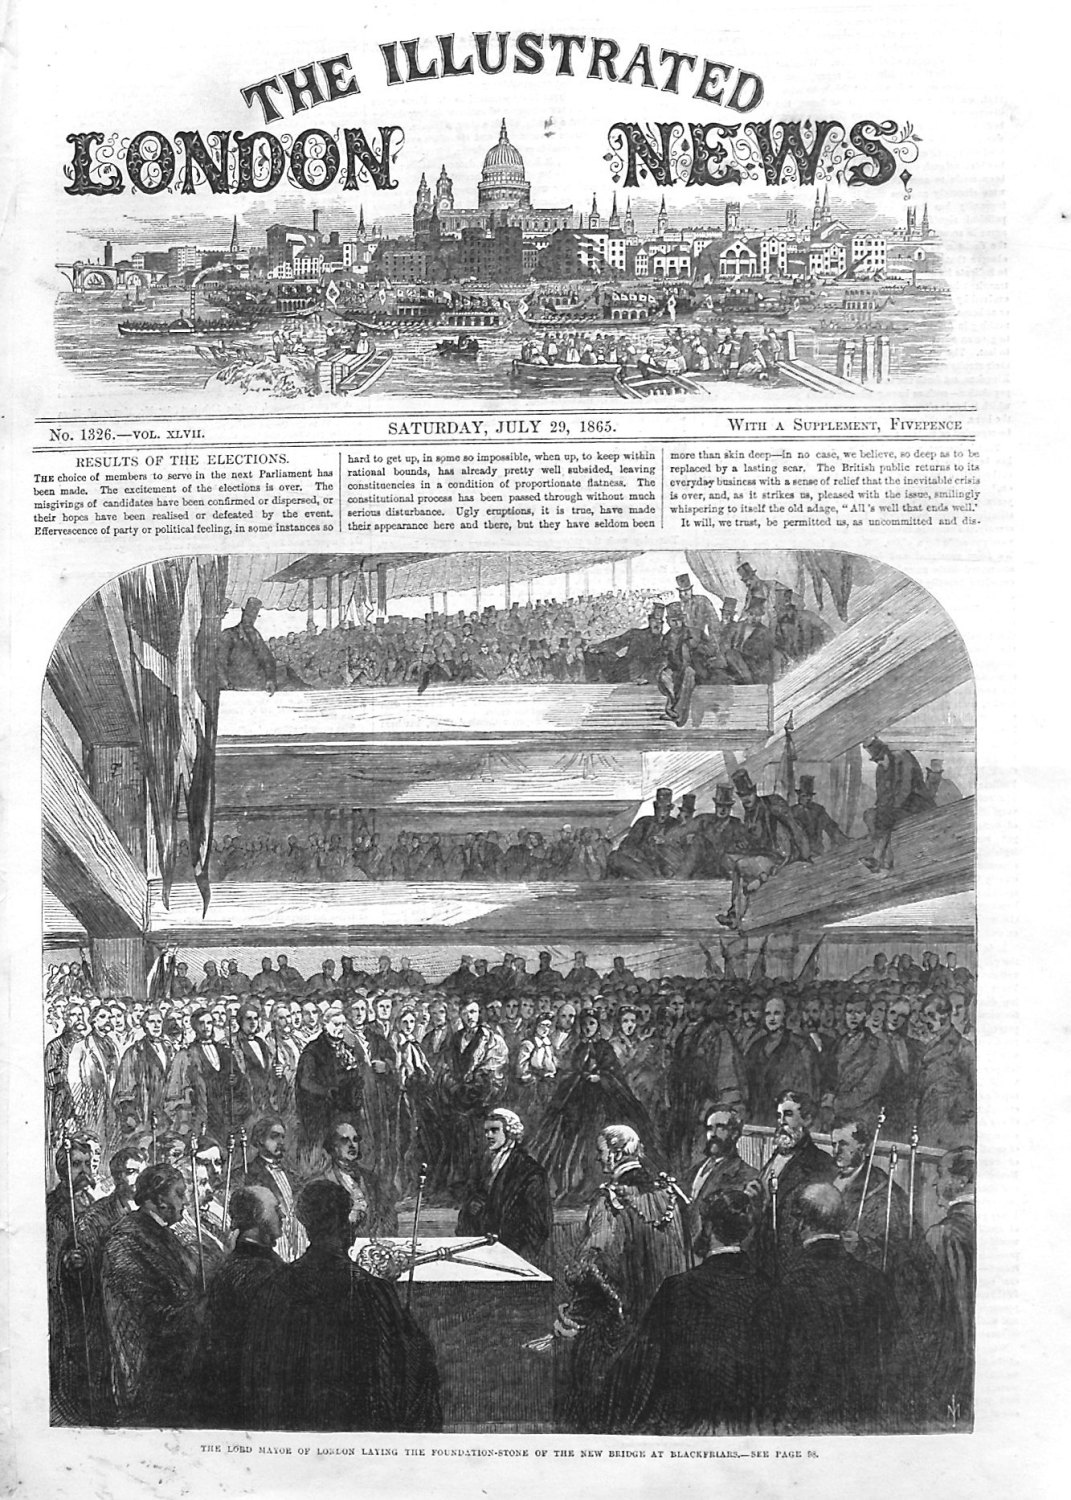 Illustrated London News July 29th 1865.